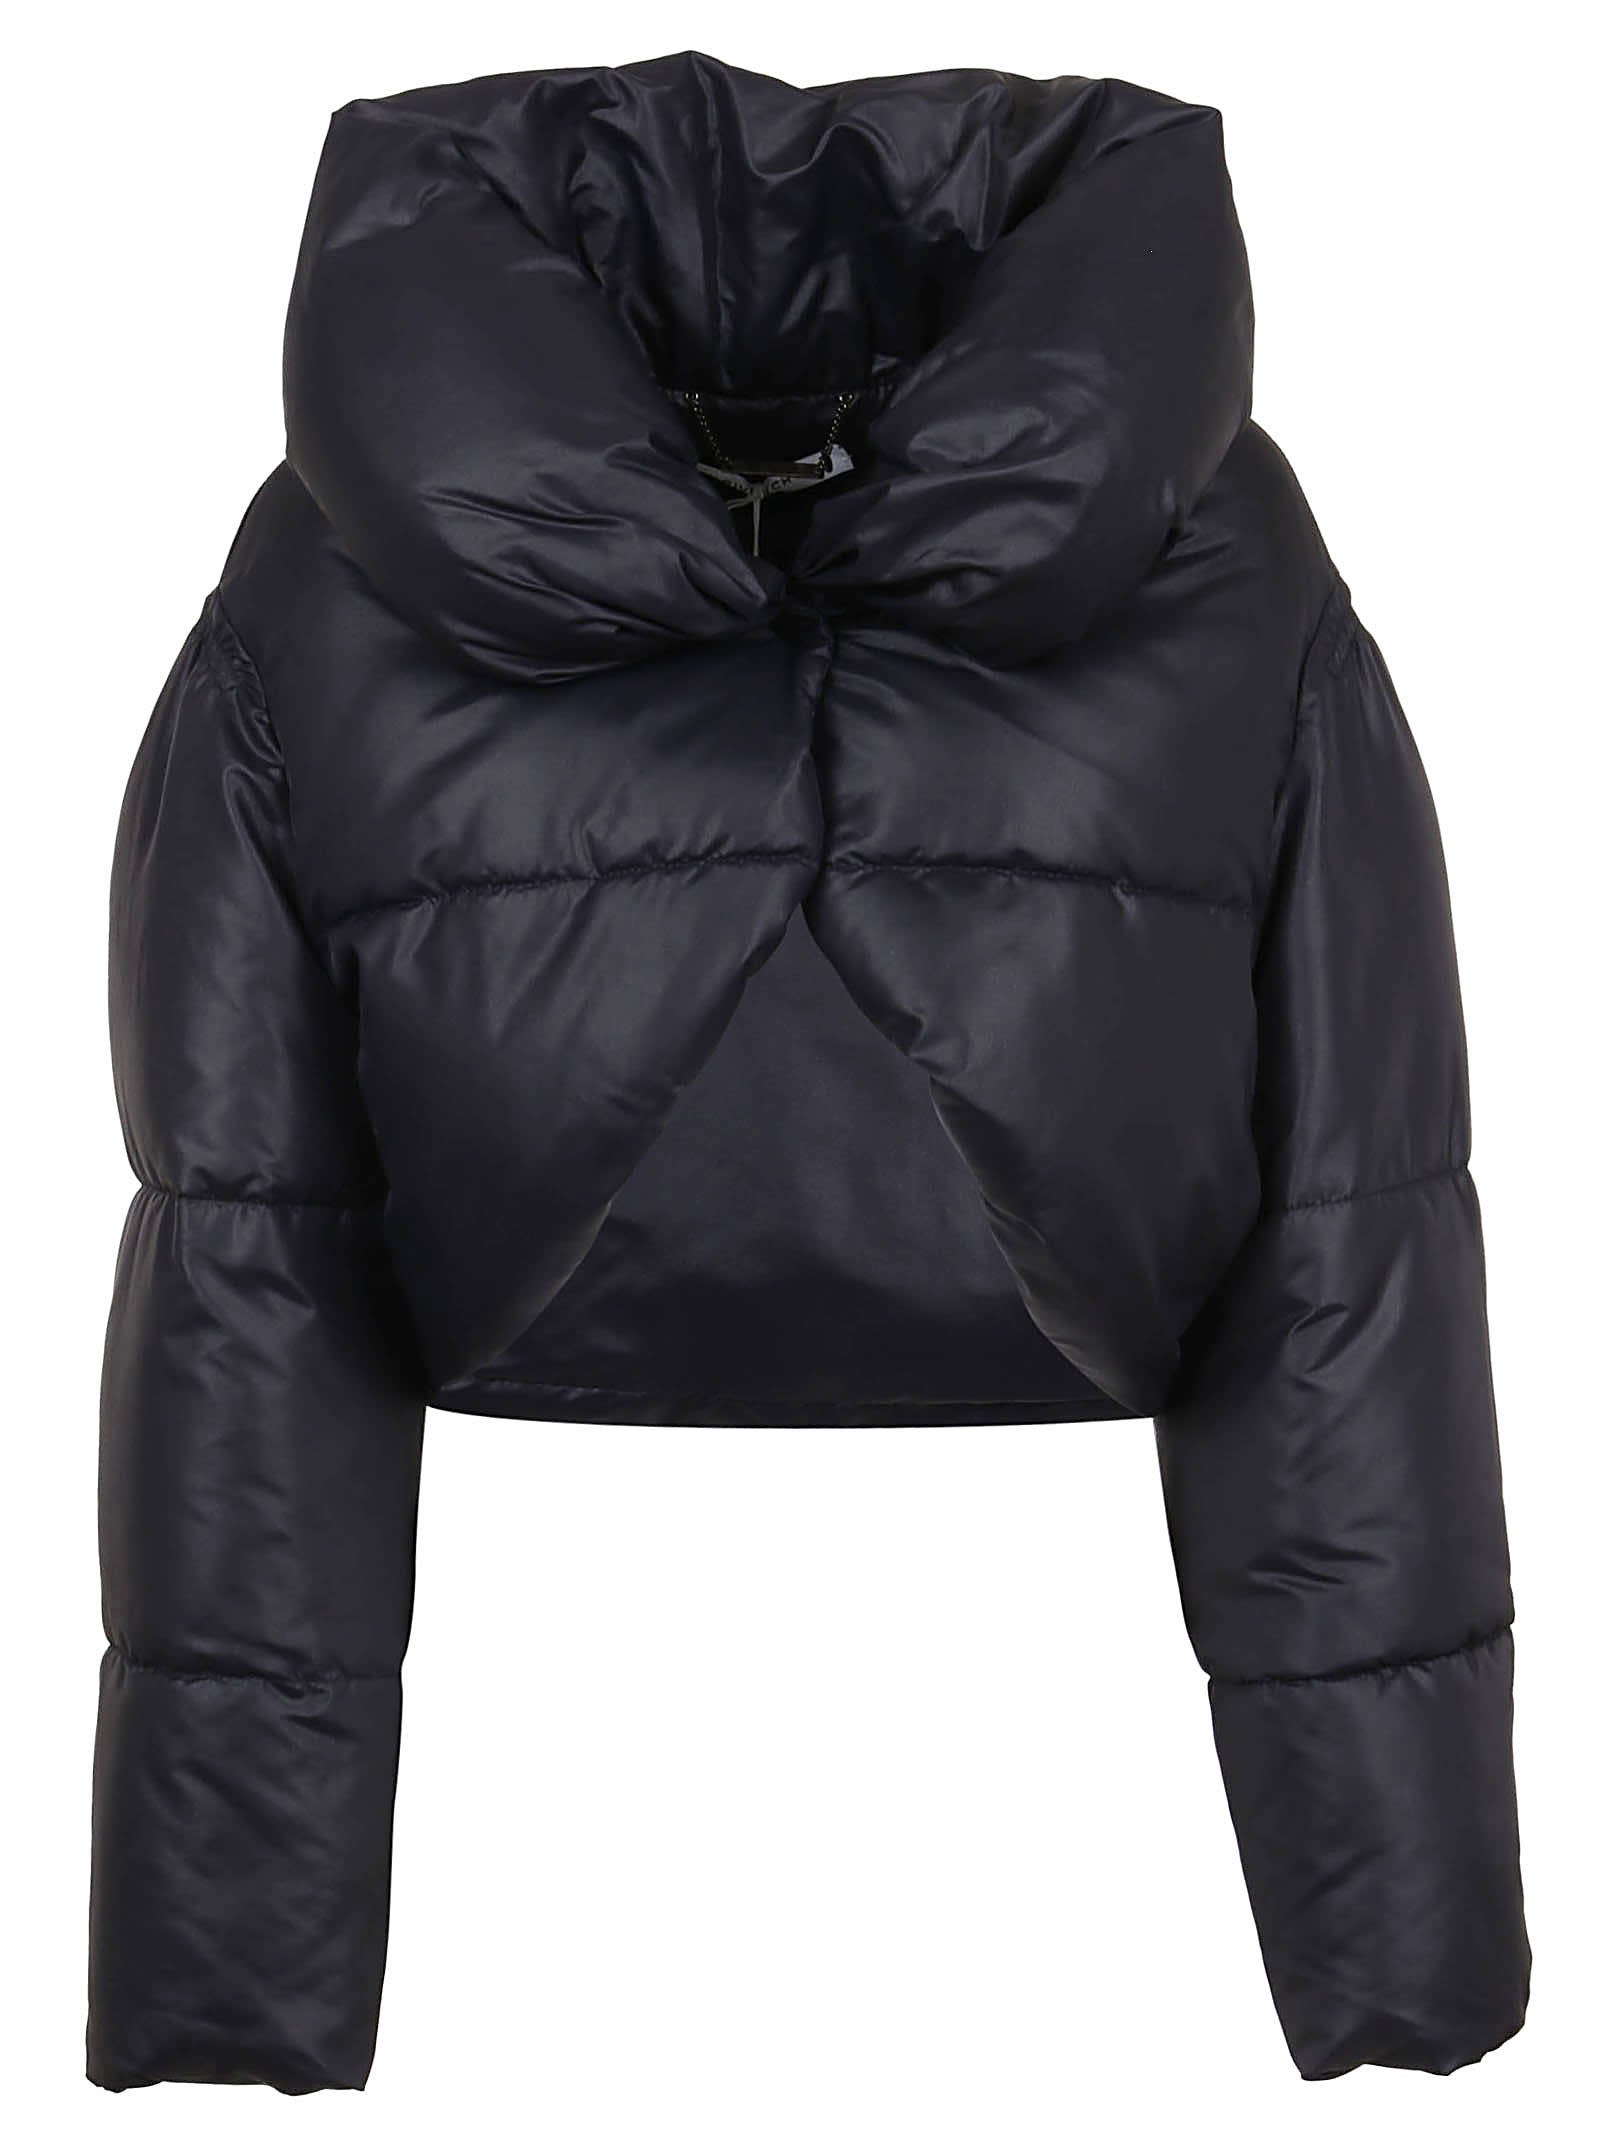 Givenchy Outerwear